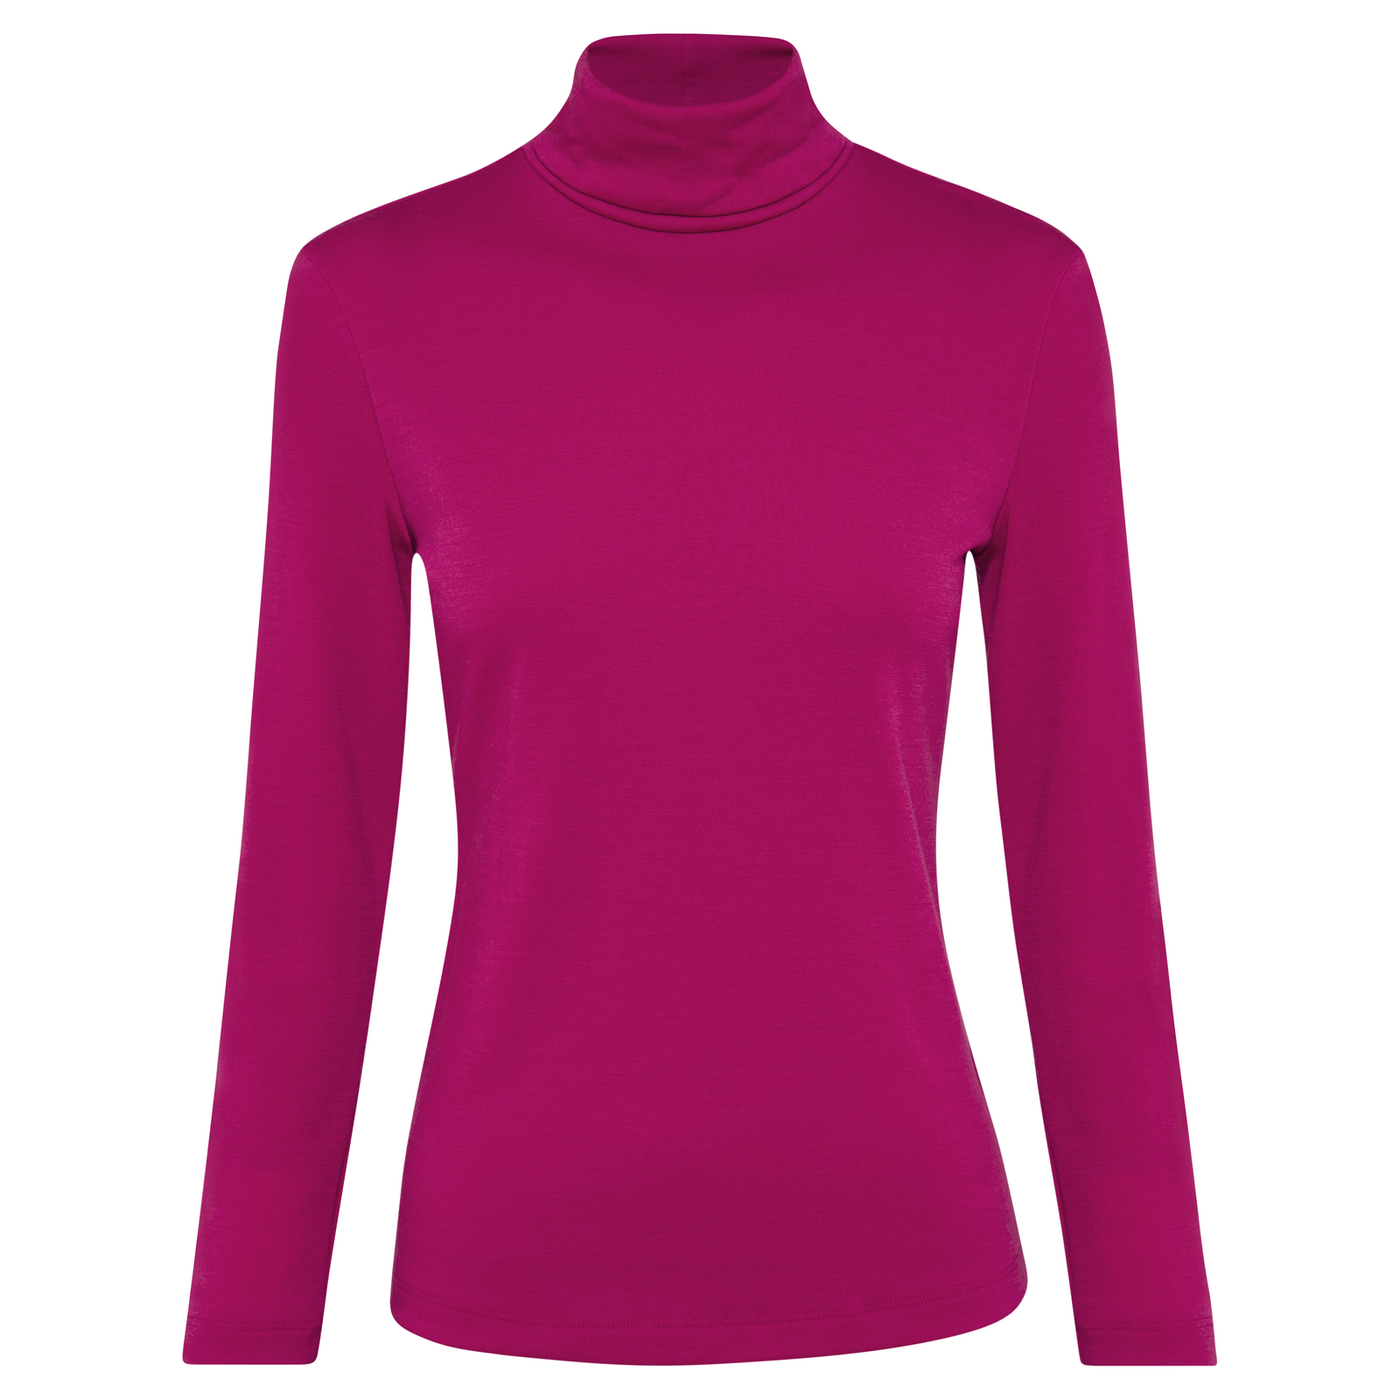 Womens Long Sleeve Turtleneck AW20